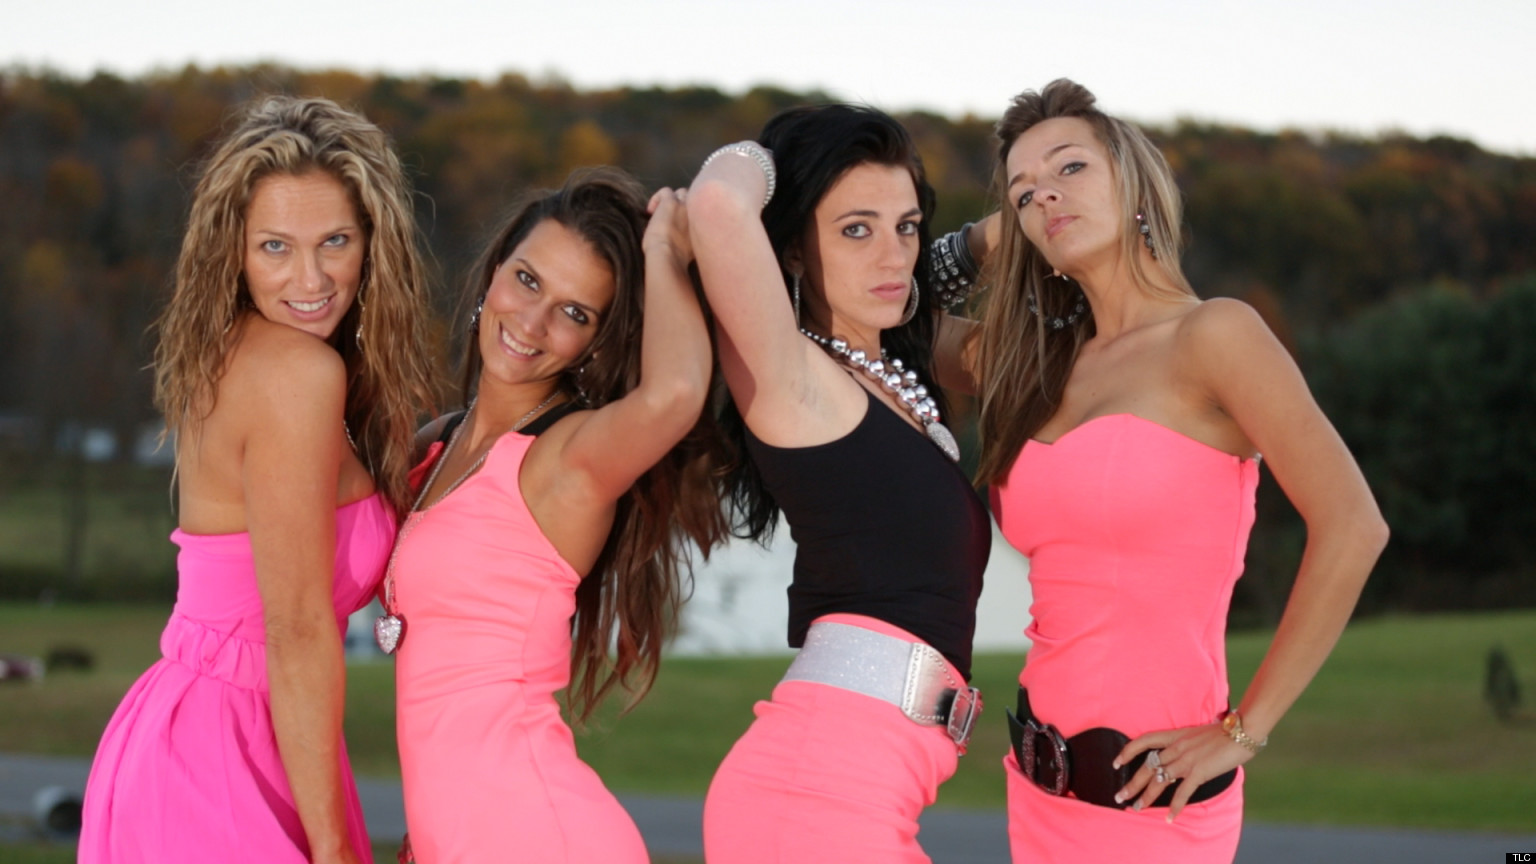 Gypsy Sisters Reveal Motor Oil Tanning Secrets On New TLC Series EXCLUSIVE VIDEO